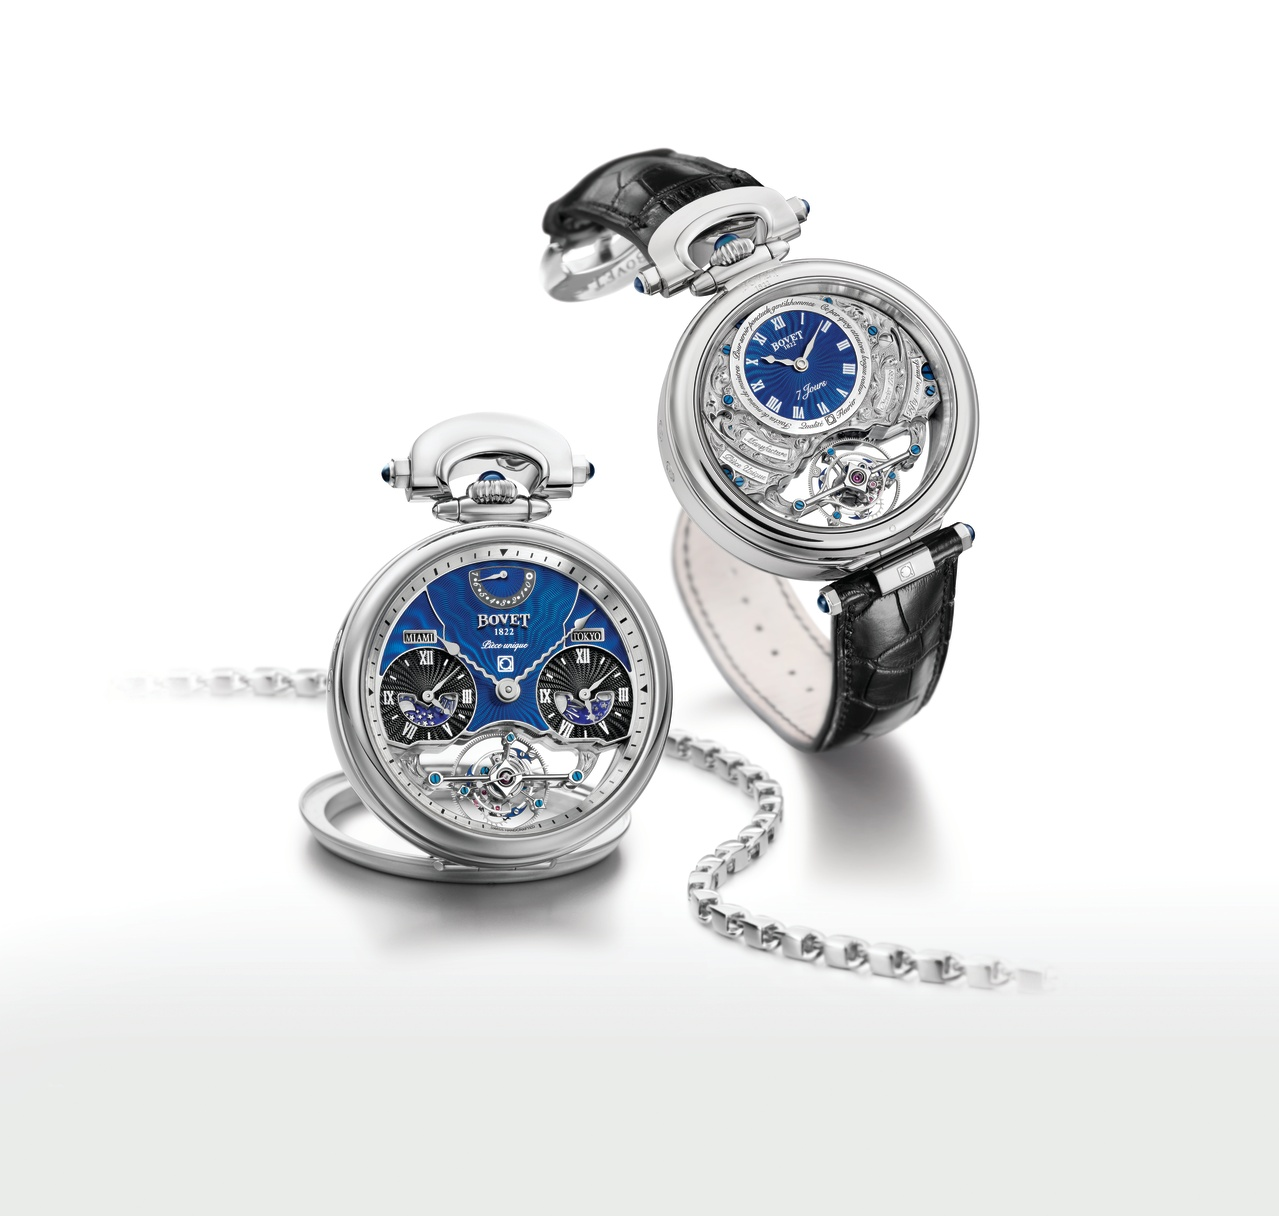 Bovet Watch   Amadeo Fleurier Grandes Complications   Ref. Nr.  FQF CERTIFIED    Call 312-944-3100  | For Availability